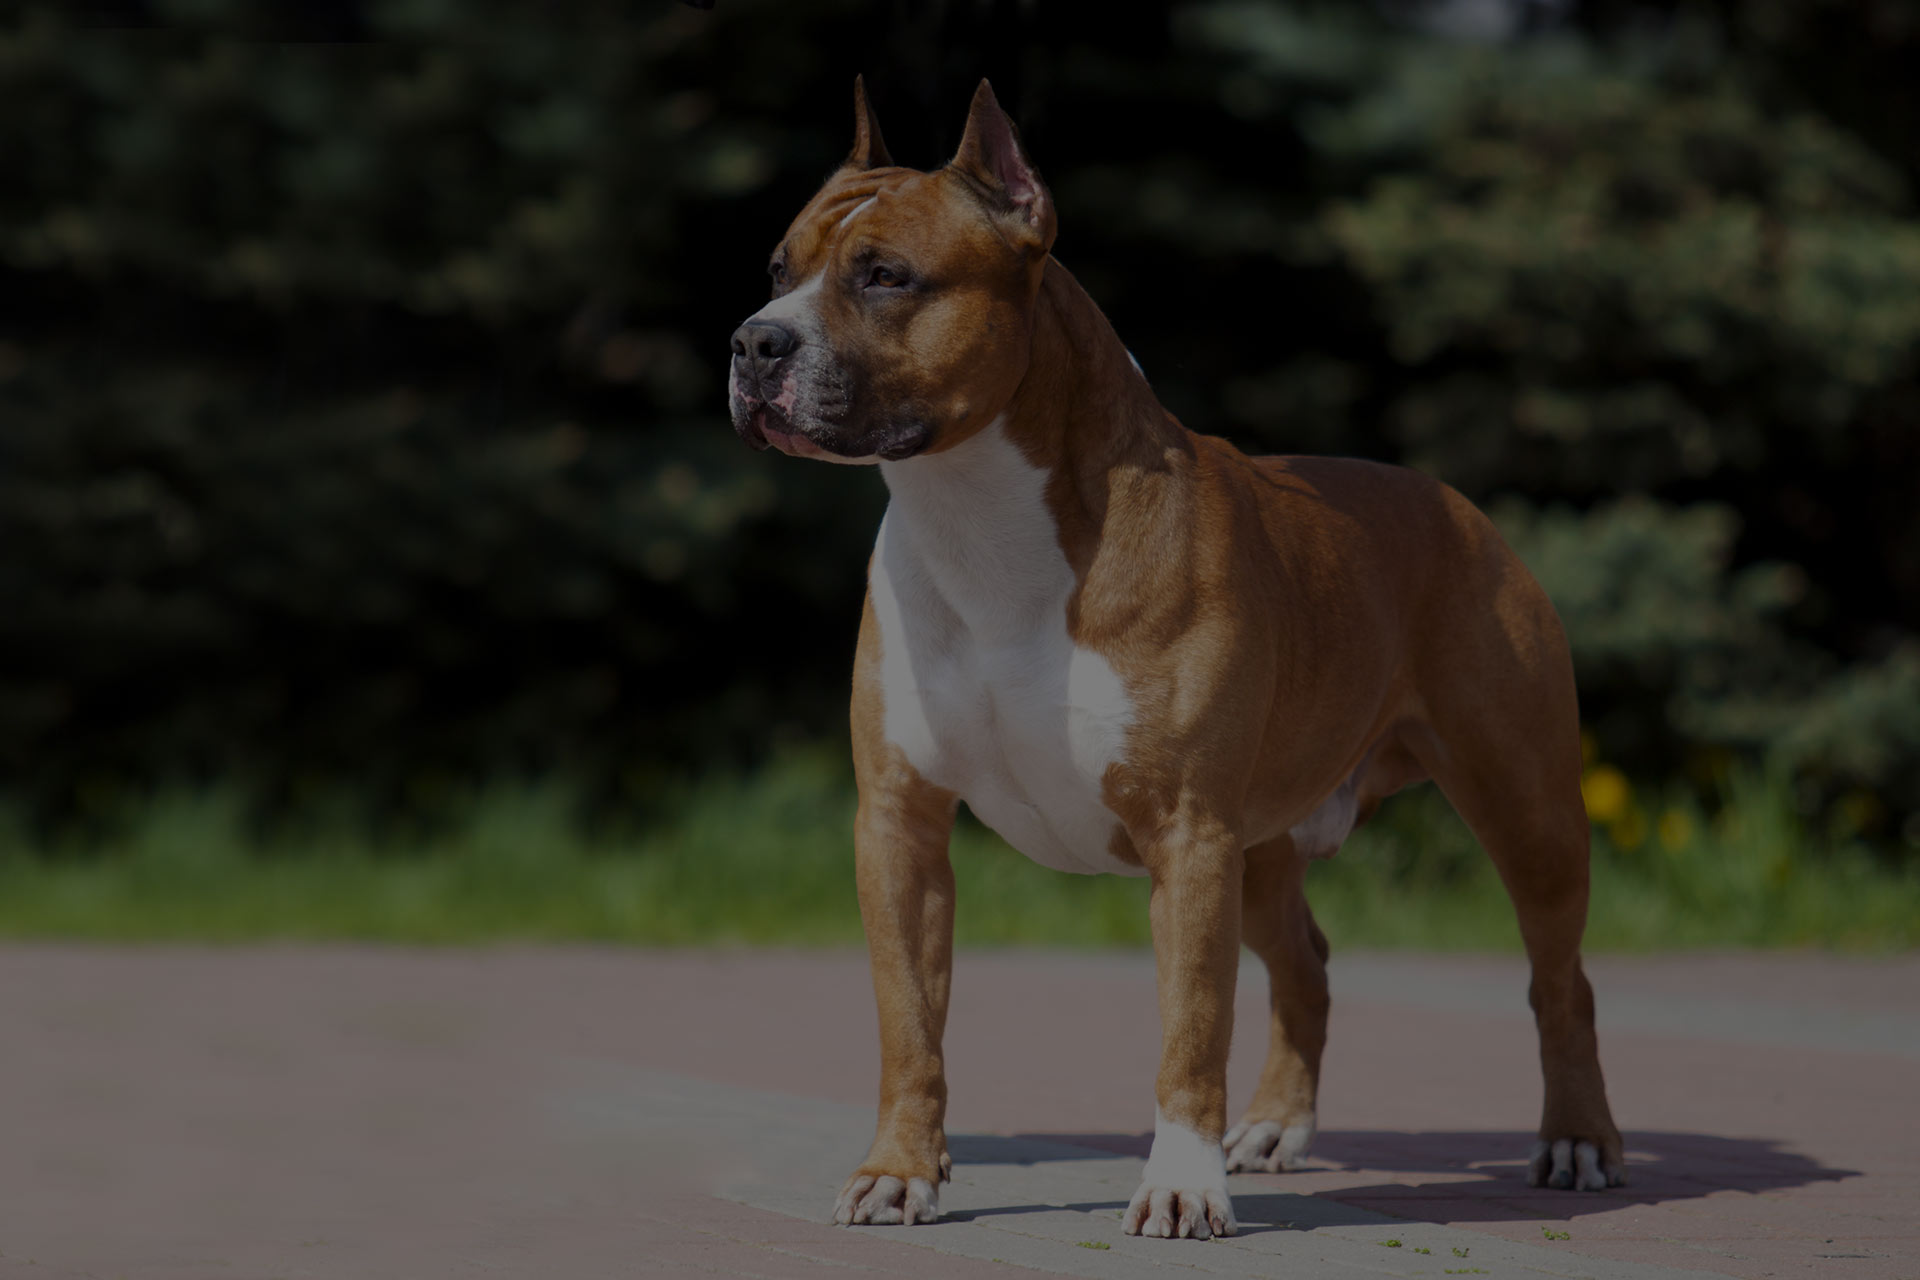 American Staffordshire Terrier outdoor portrait